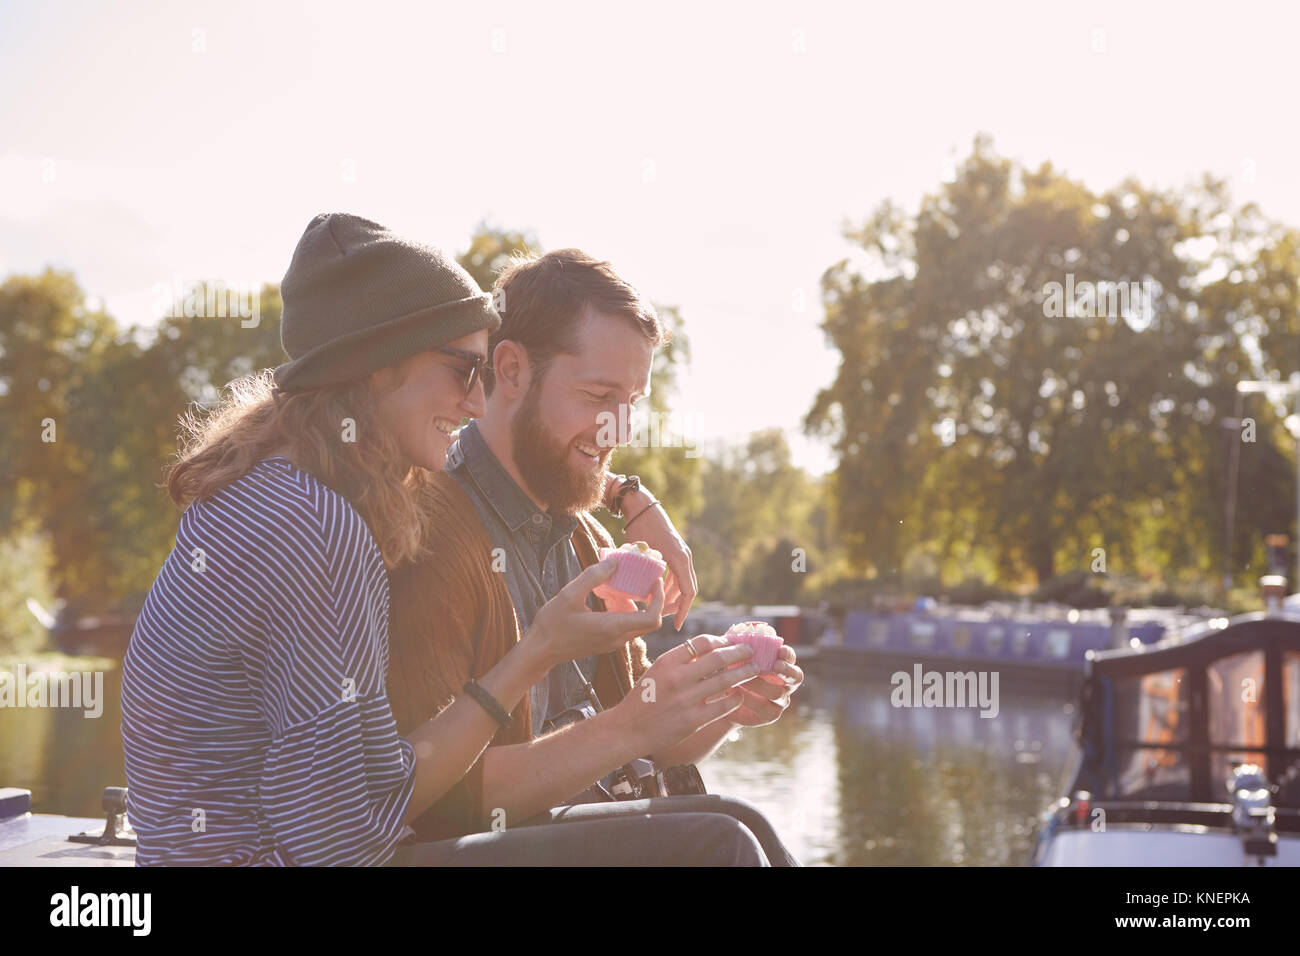 Couple eating cupcakes on canal boat - Stock Image